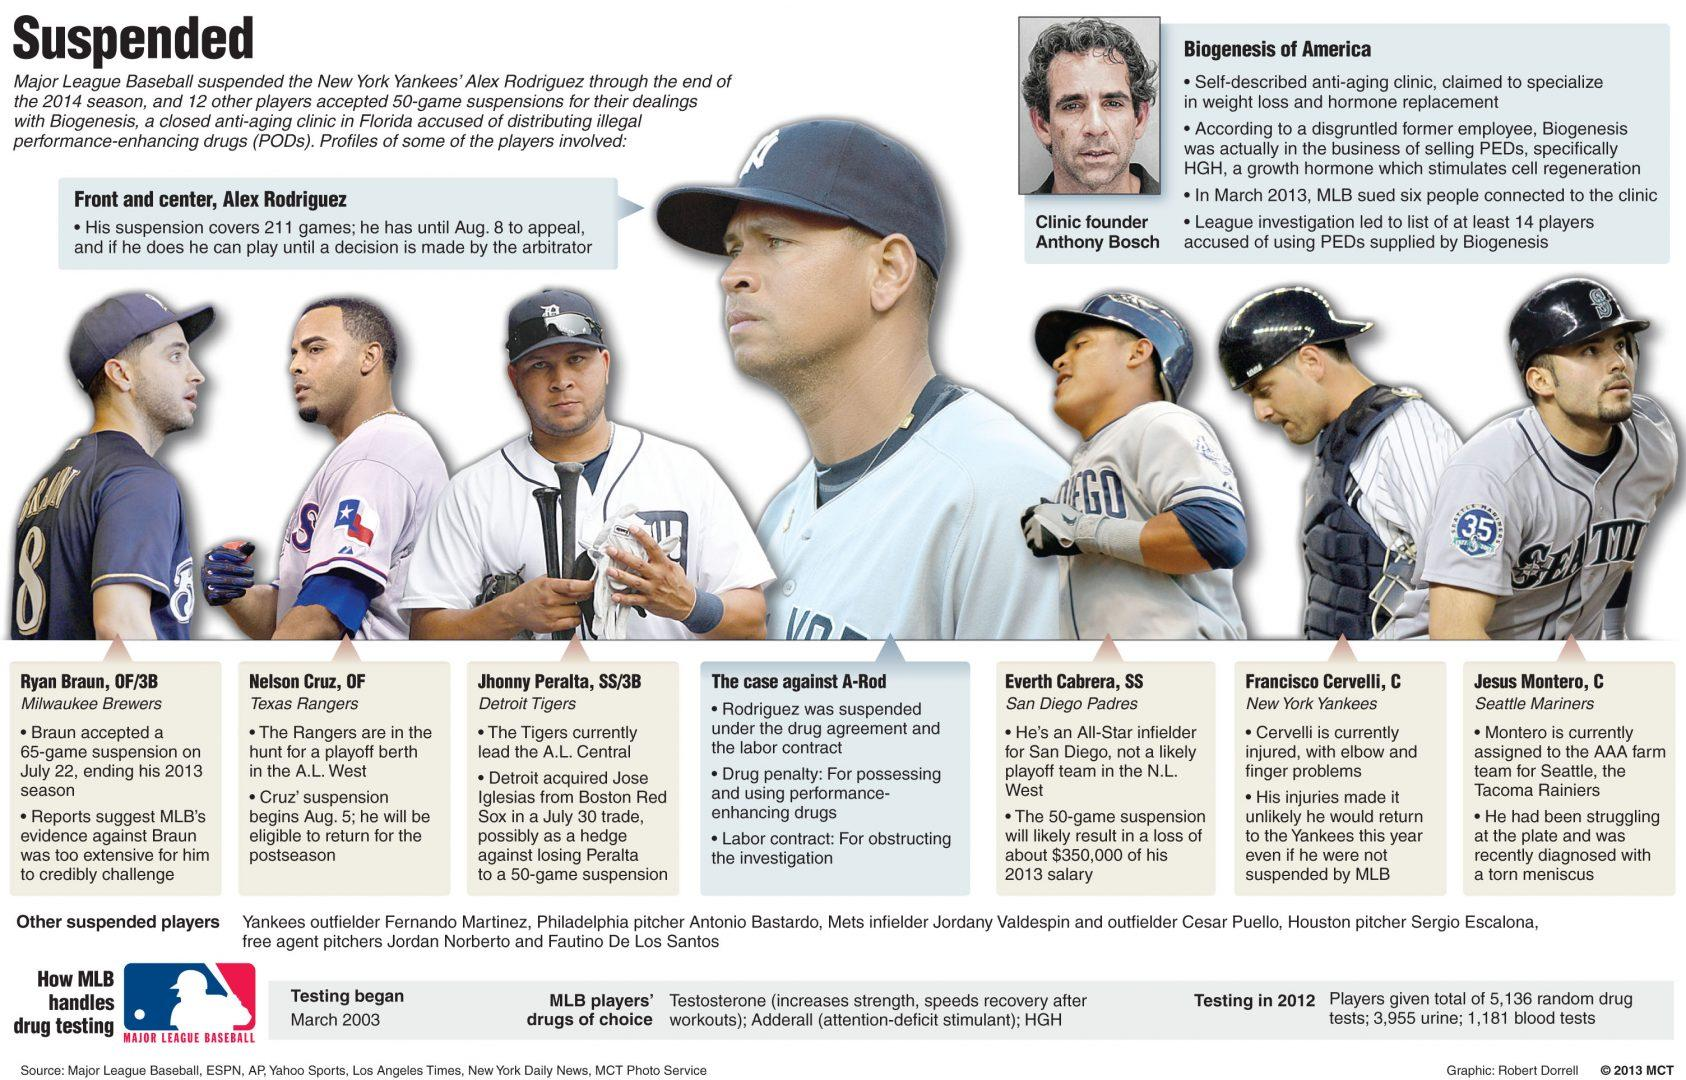 steroid in baseball timeline